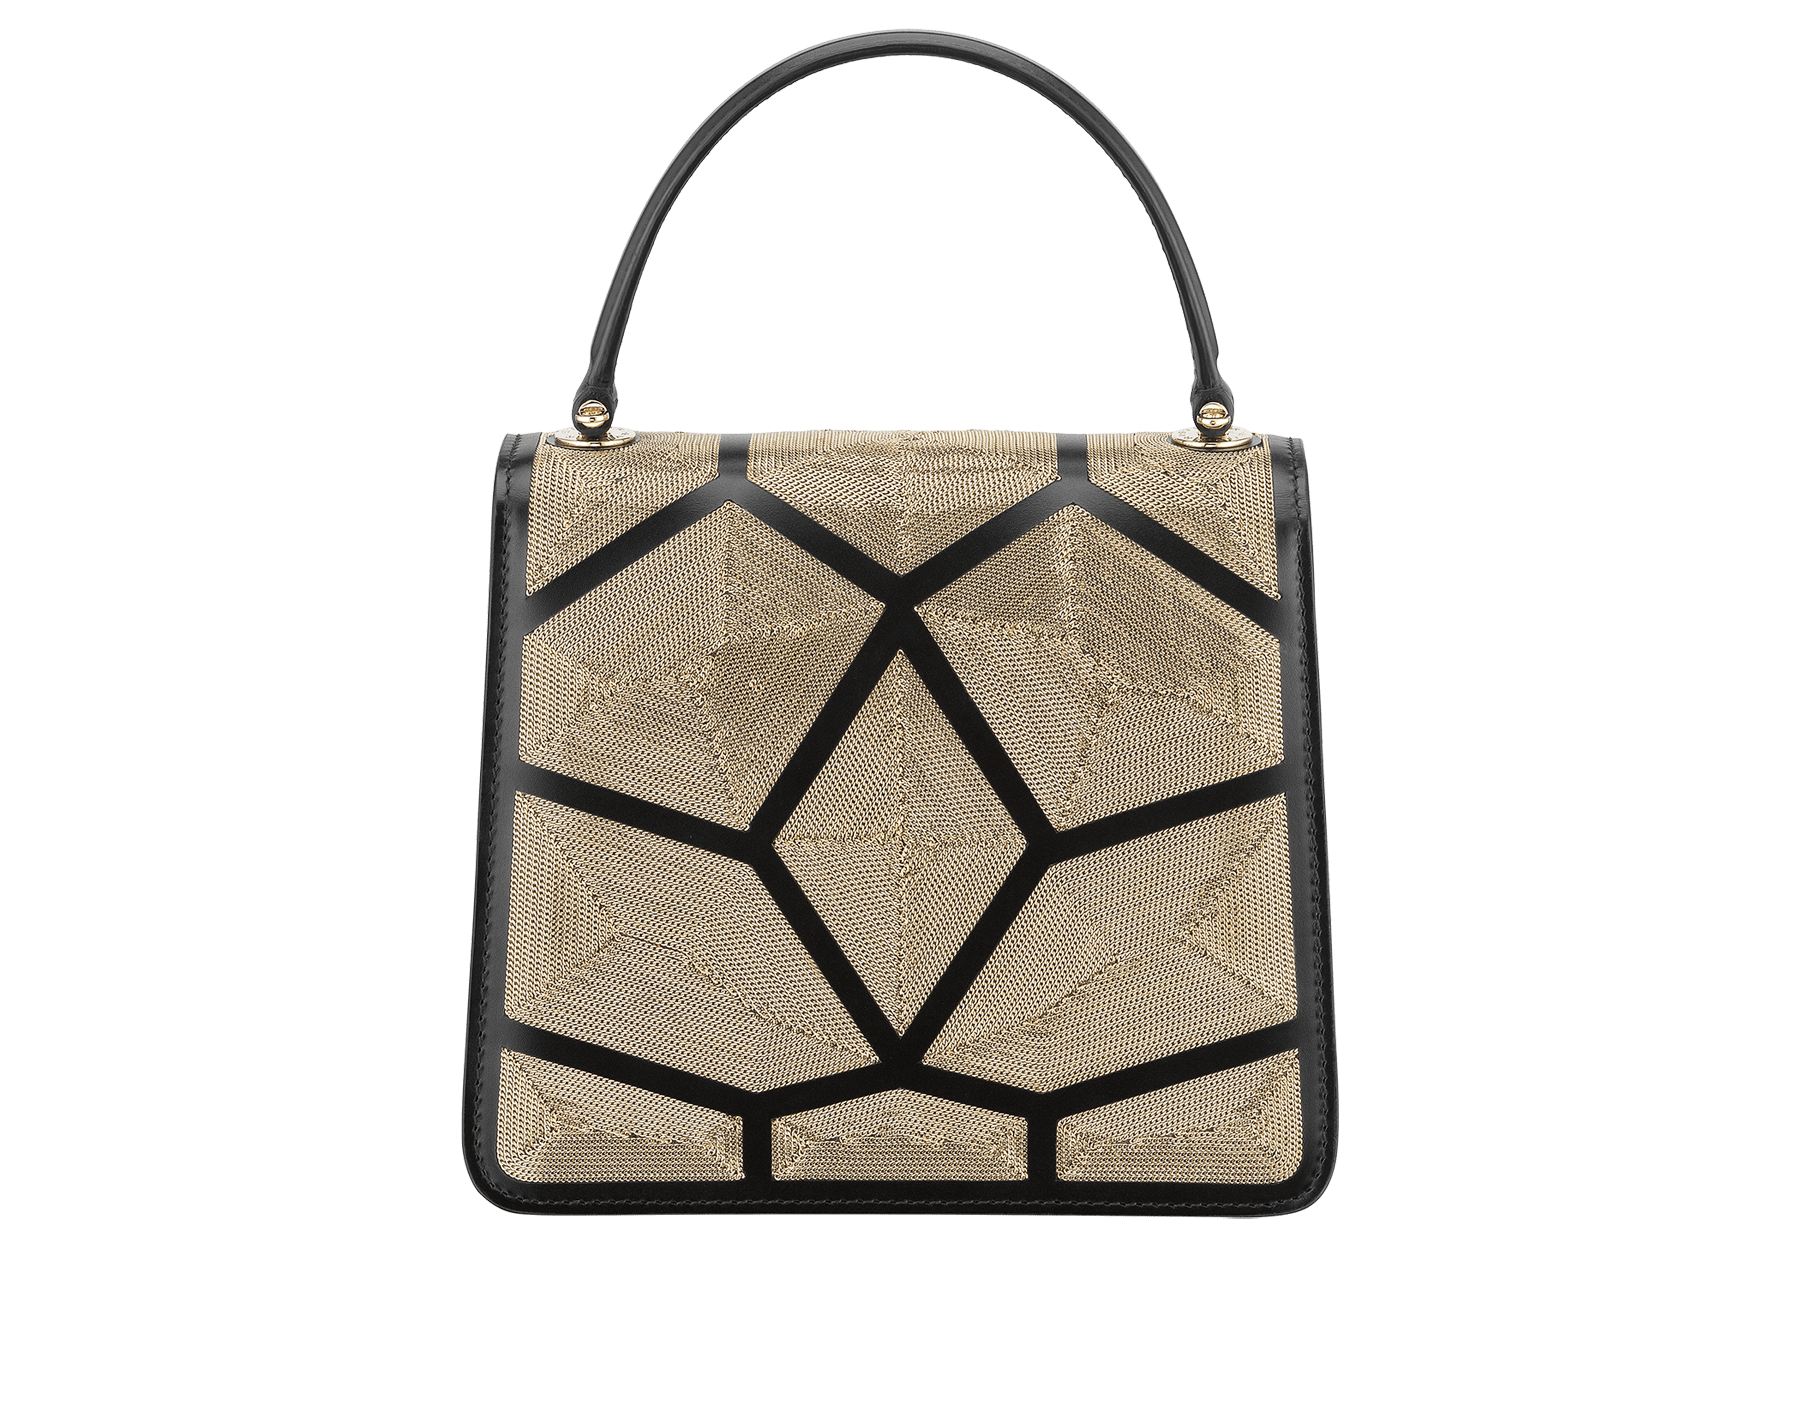 """Serpenti Forever"" crossbody bag in black calf leather and Million Chain motif body and black calf leather sides. Iconic snake head closure in light gold-plated brass enriched with black enamel and black onyx eyes. 752-CP image 3"